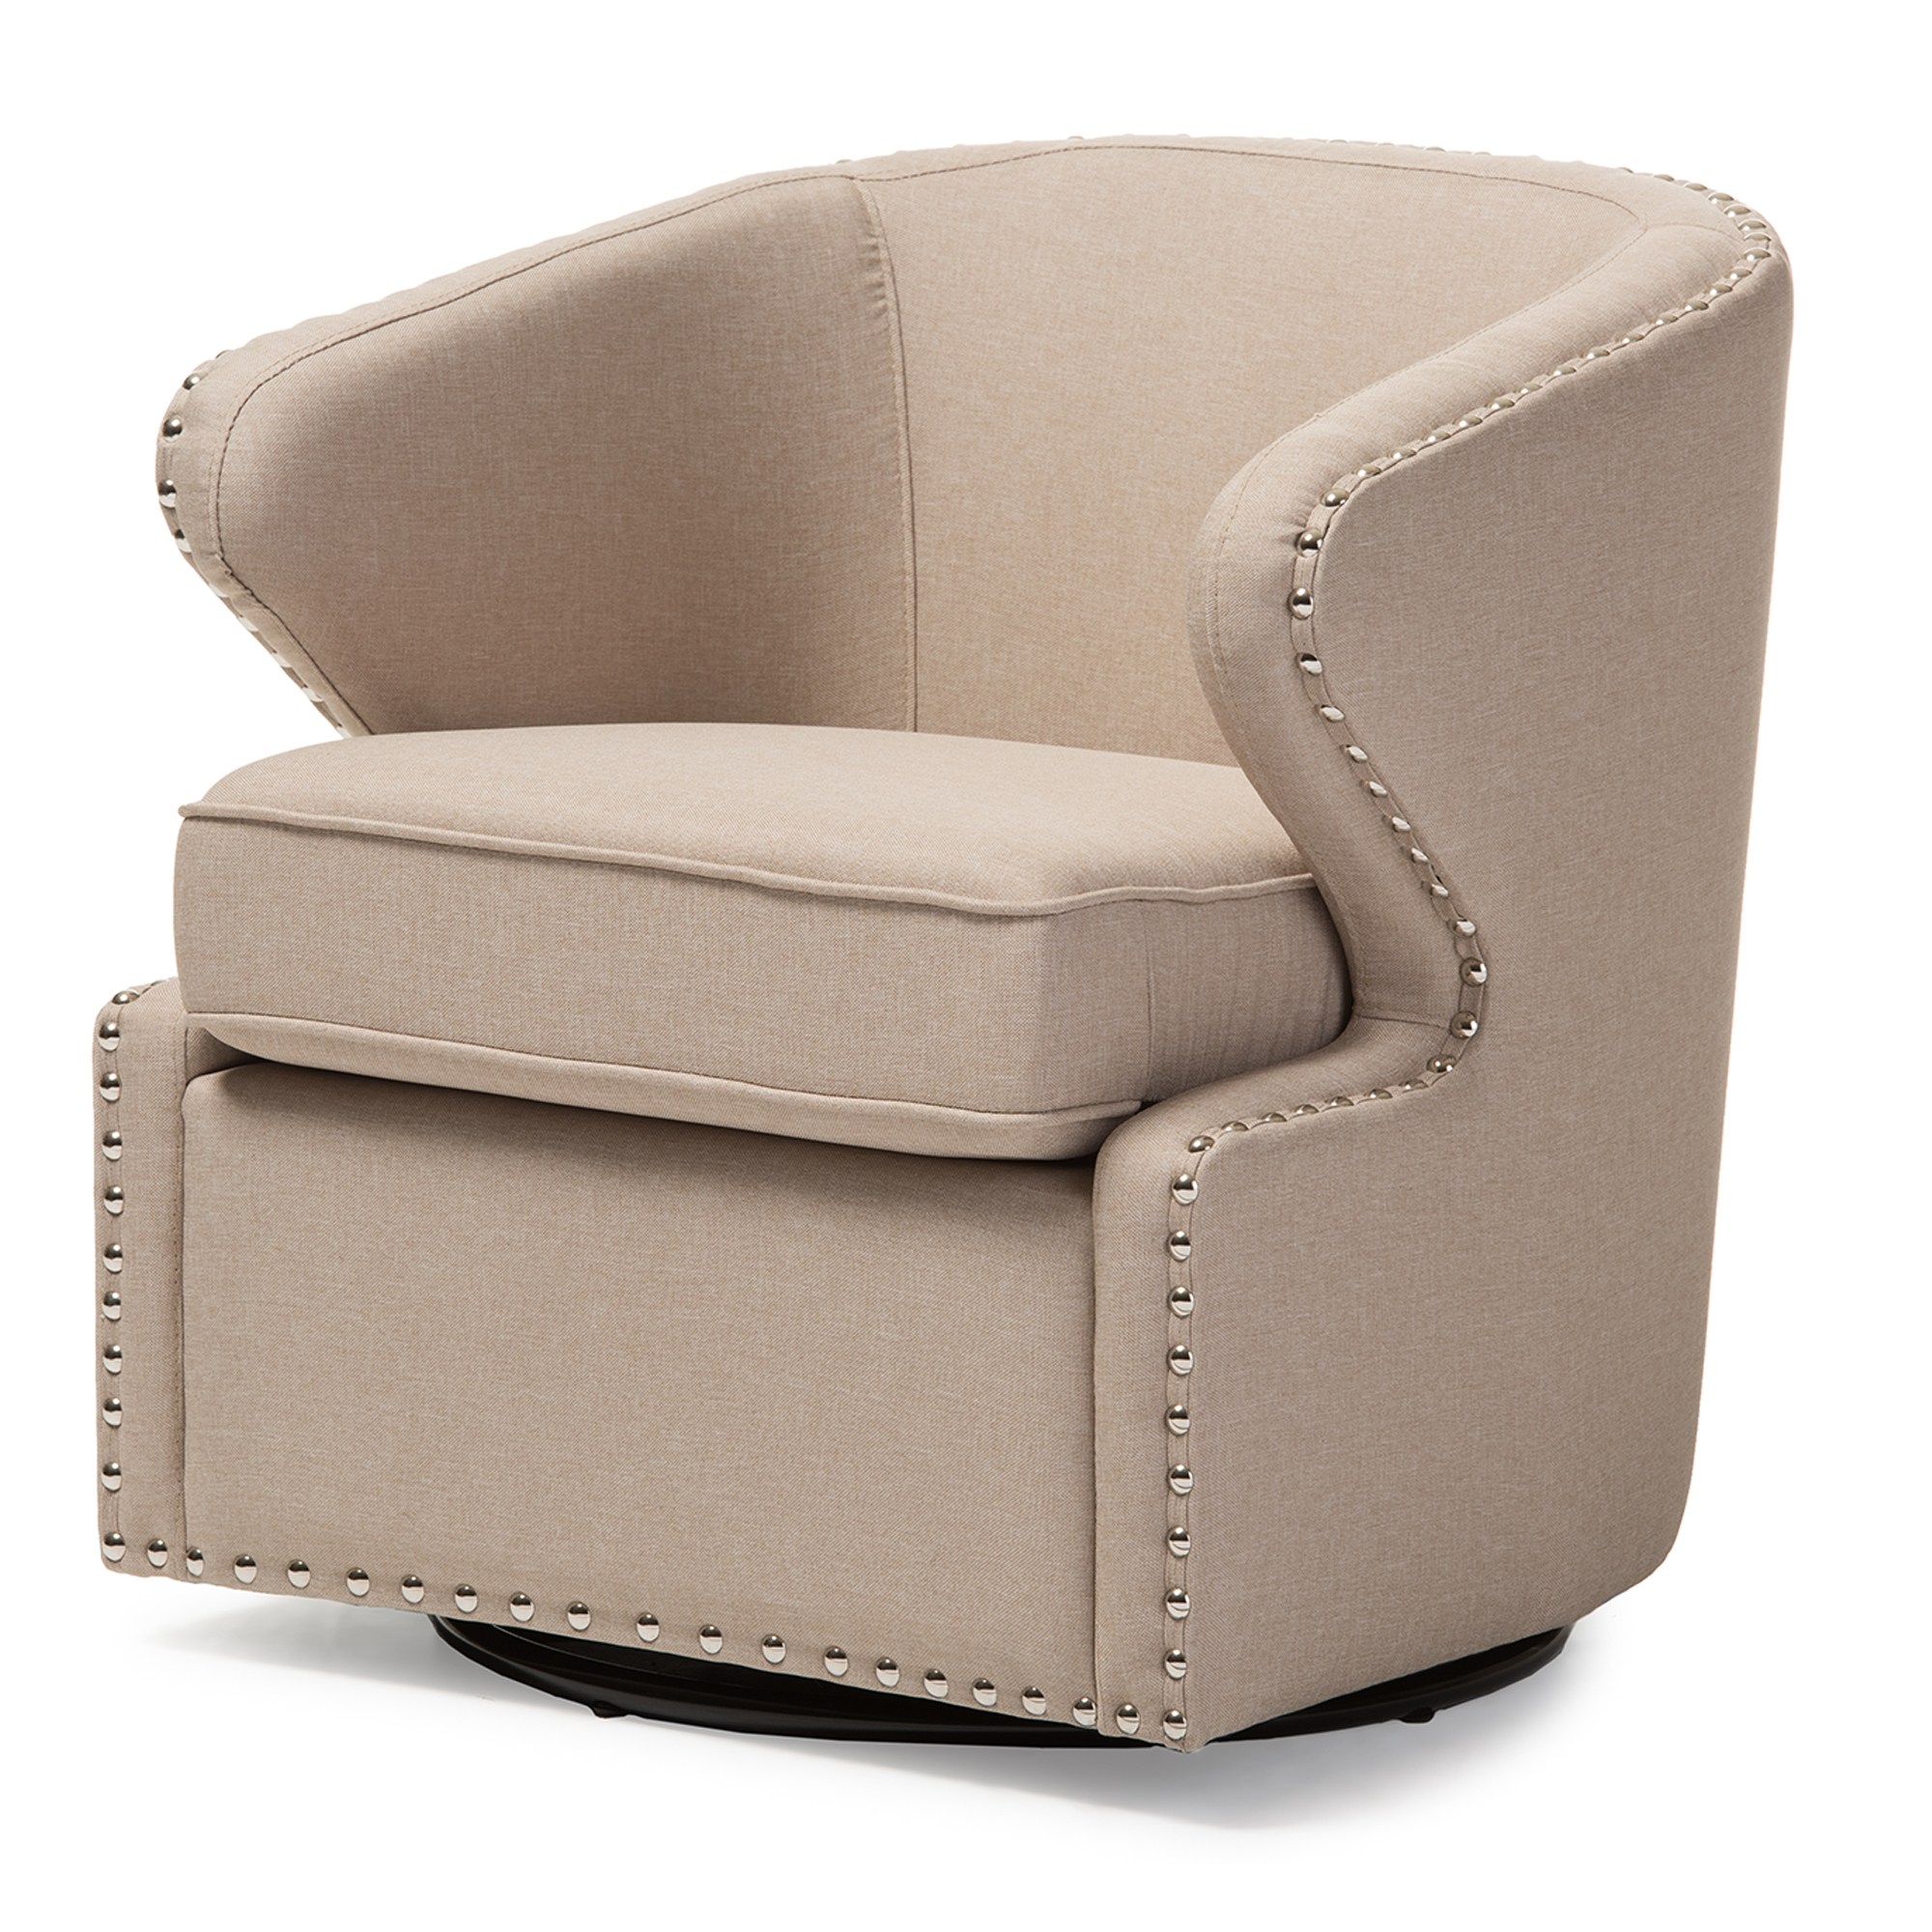 Isaac Swivel Chair Slipcover Nolan Floral Mod Side Chair  : DB 203 Beige 2 from algarveglobal.com size 2000 x 2000 jpeg 1895kB